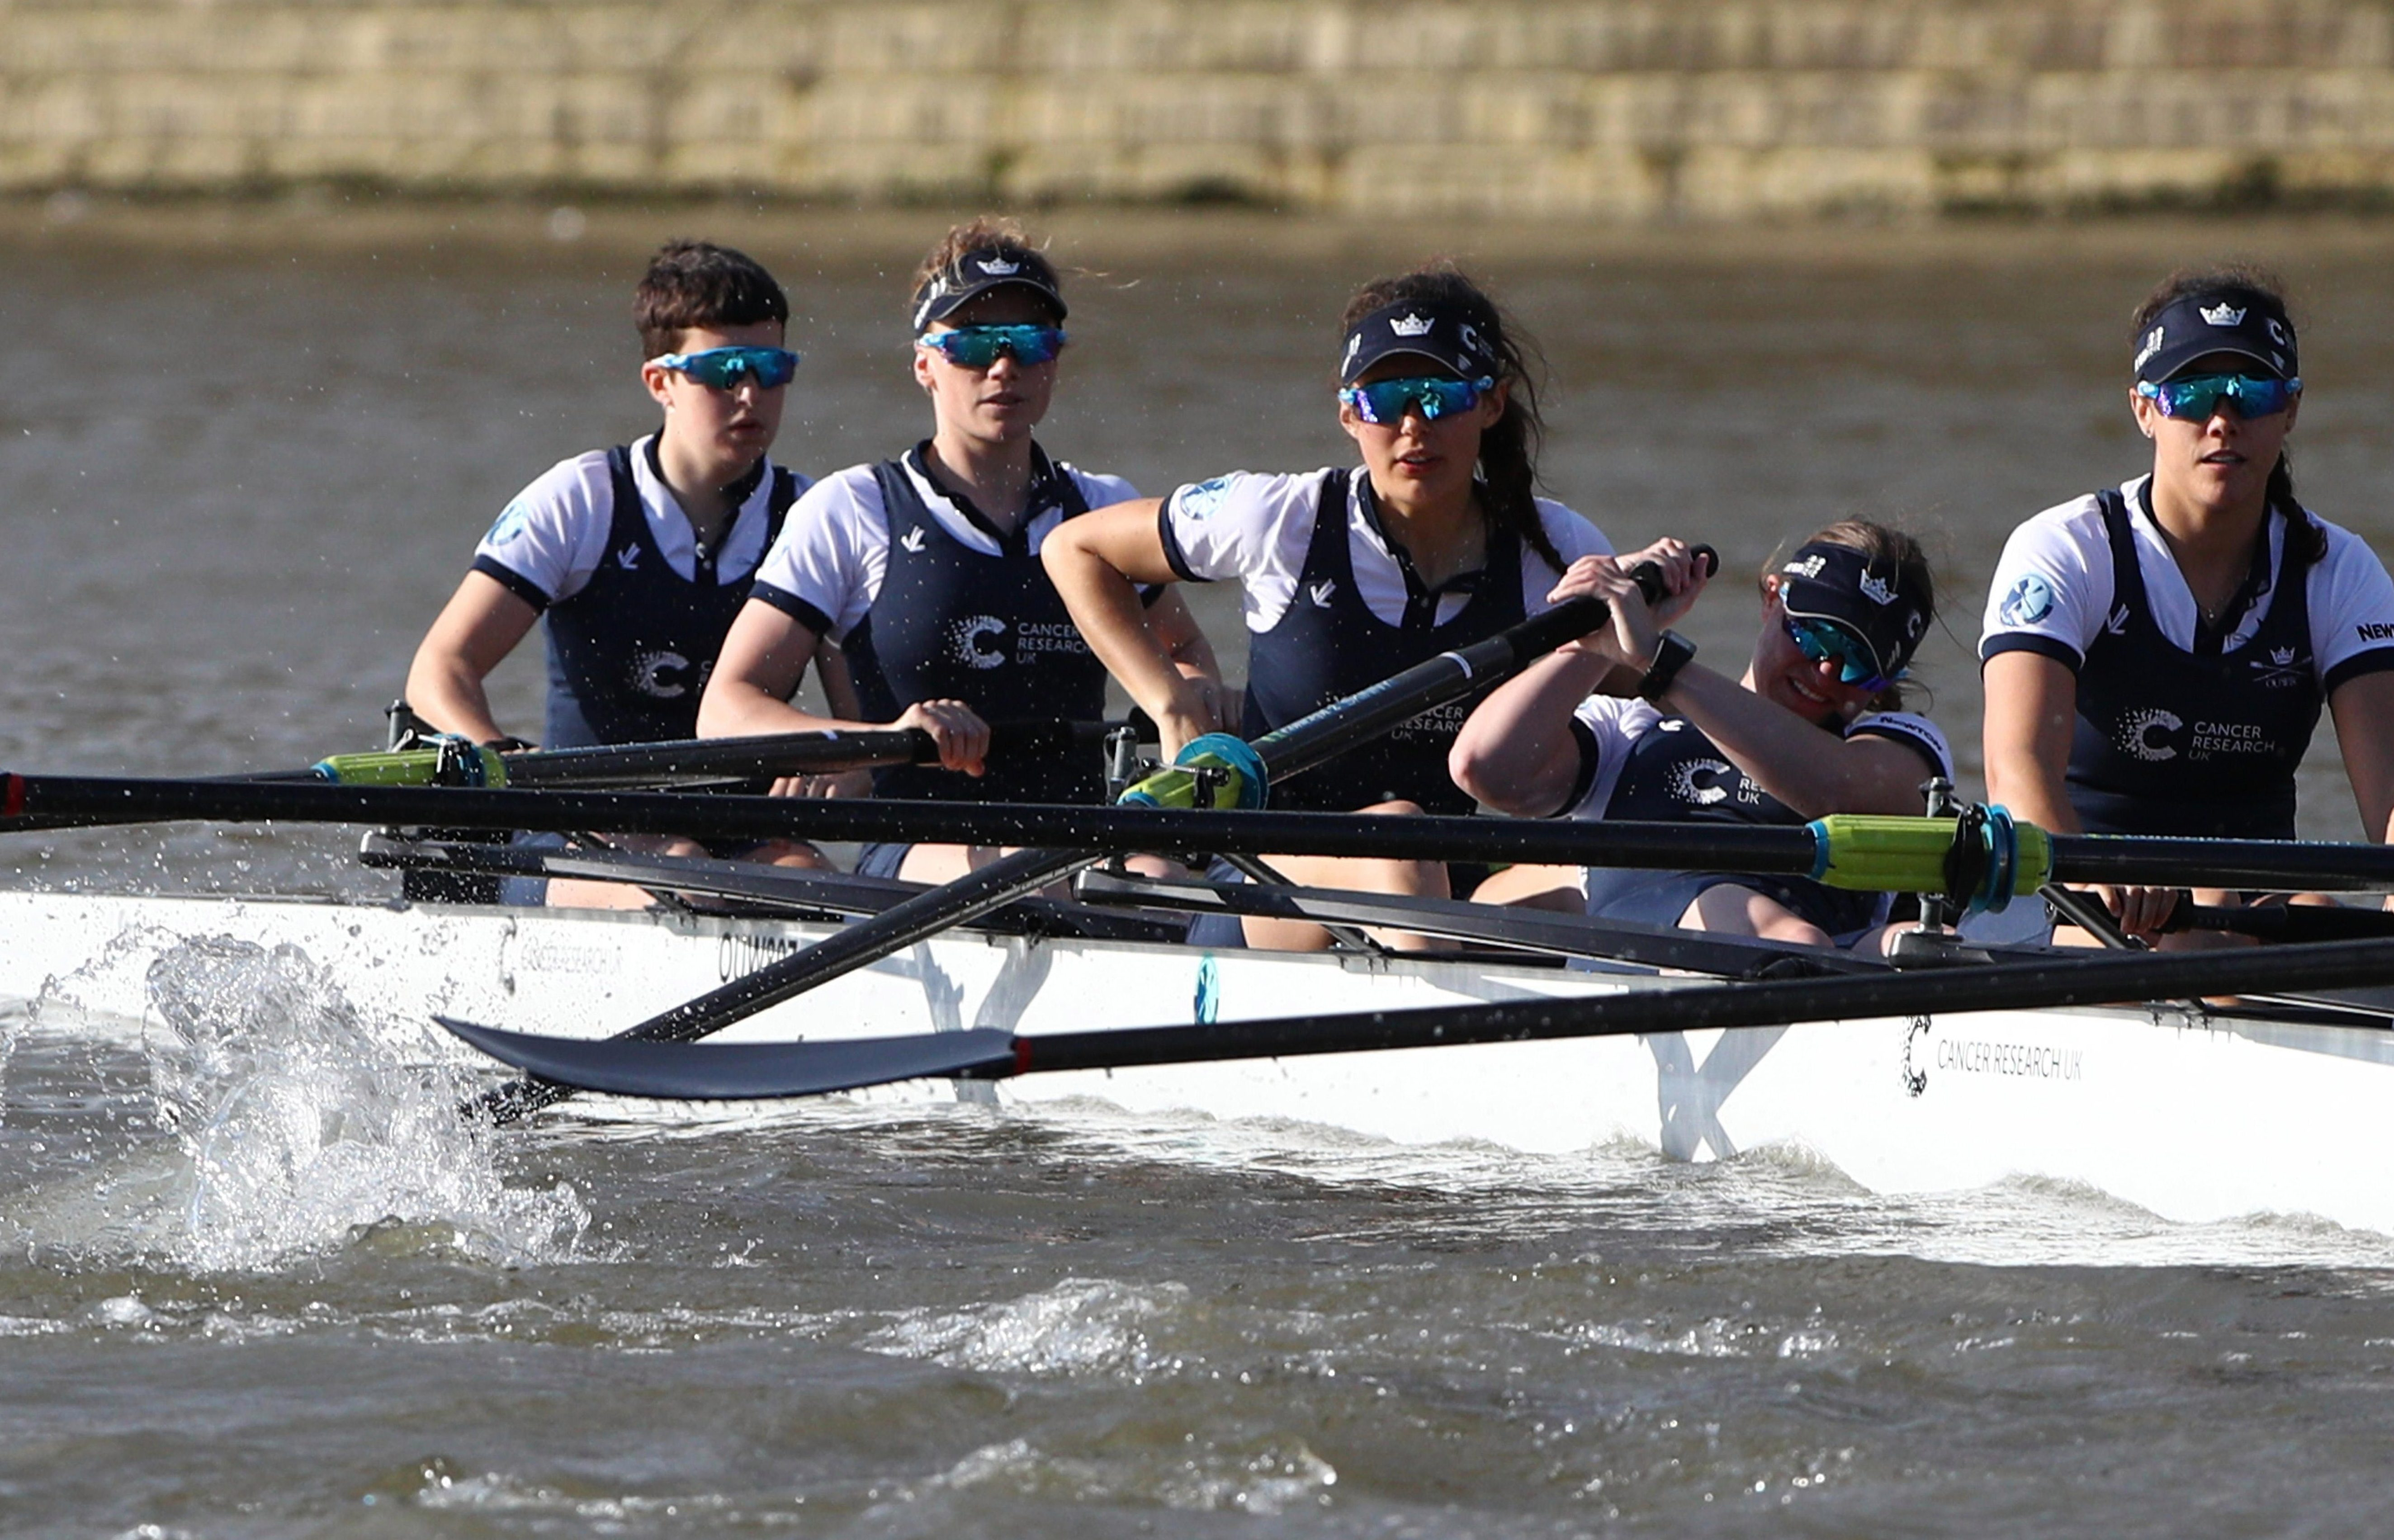 The boat race is an annual rowing event between two top British universities with this year's scheduled for this Saturday